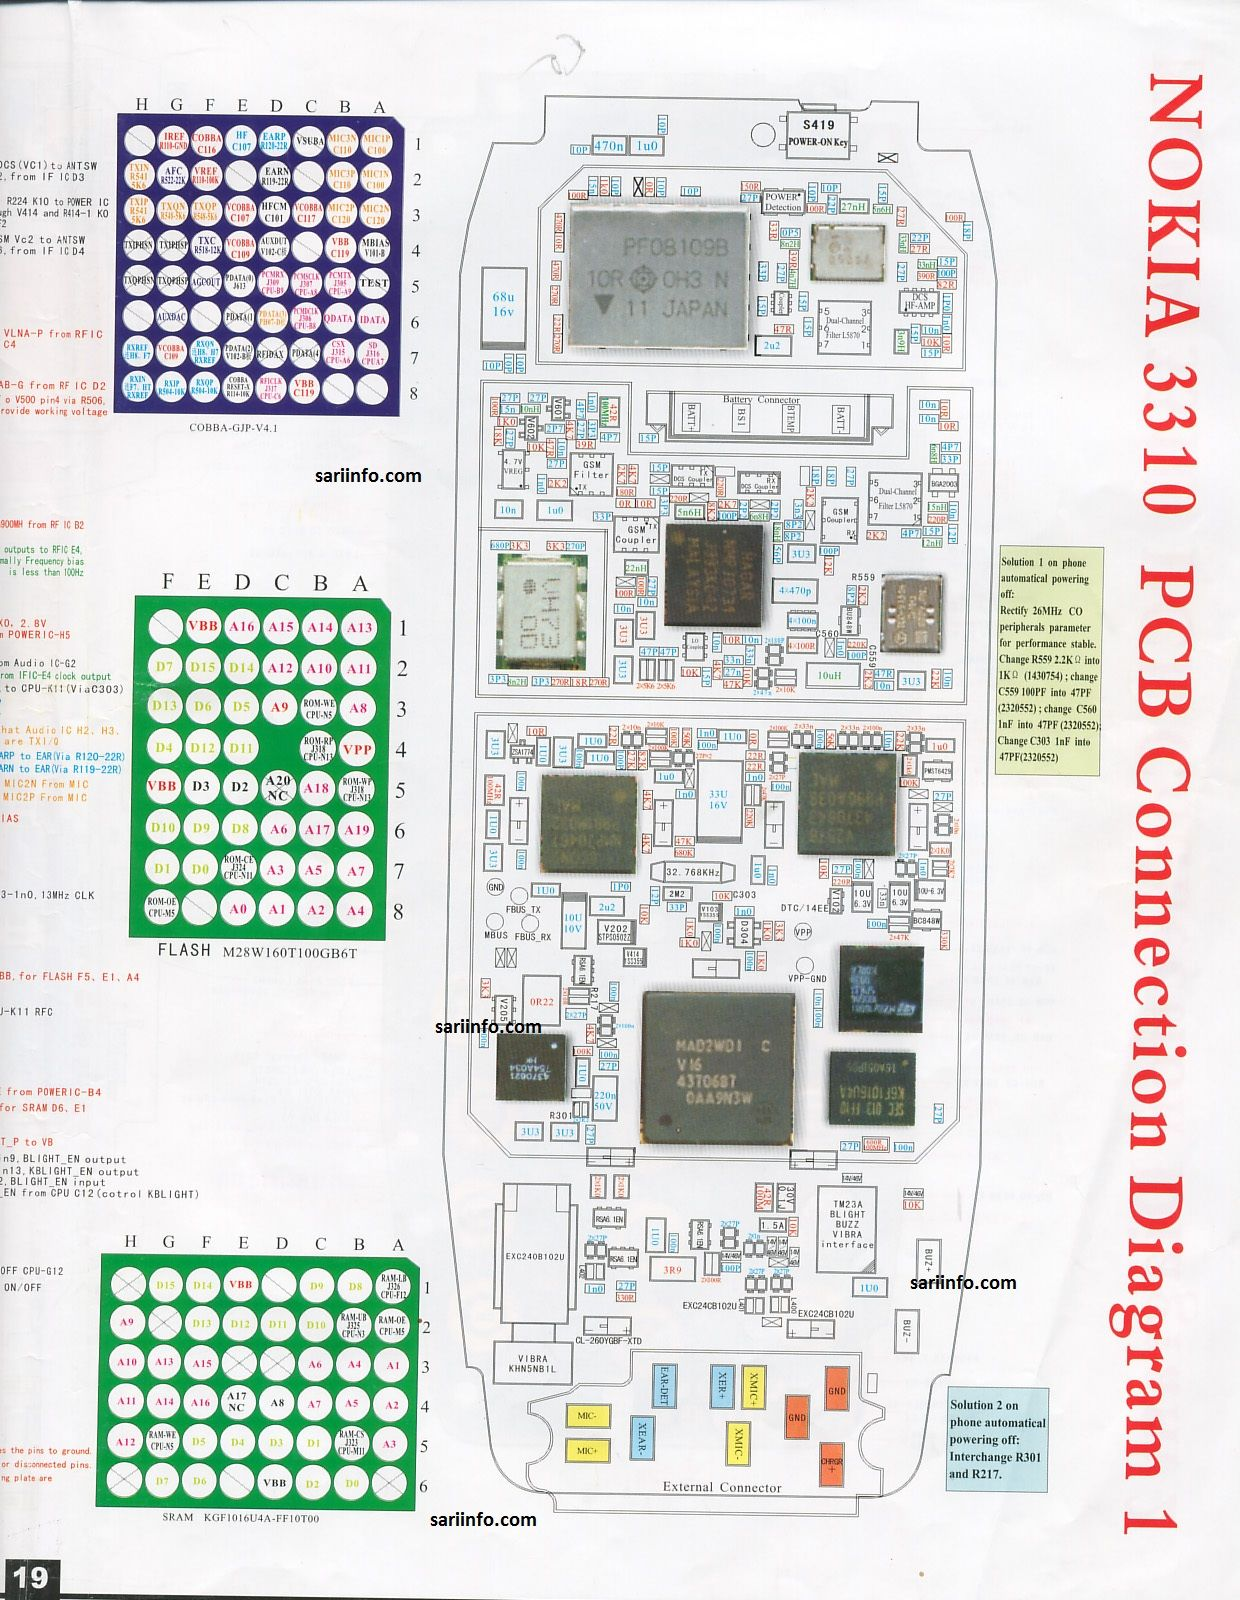 nokia 3310 pcb diagram solutions | Mobiles & Tablets